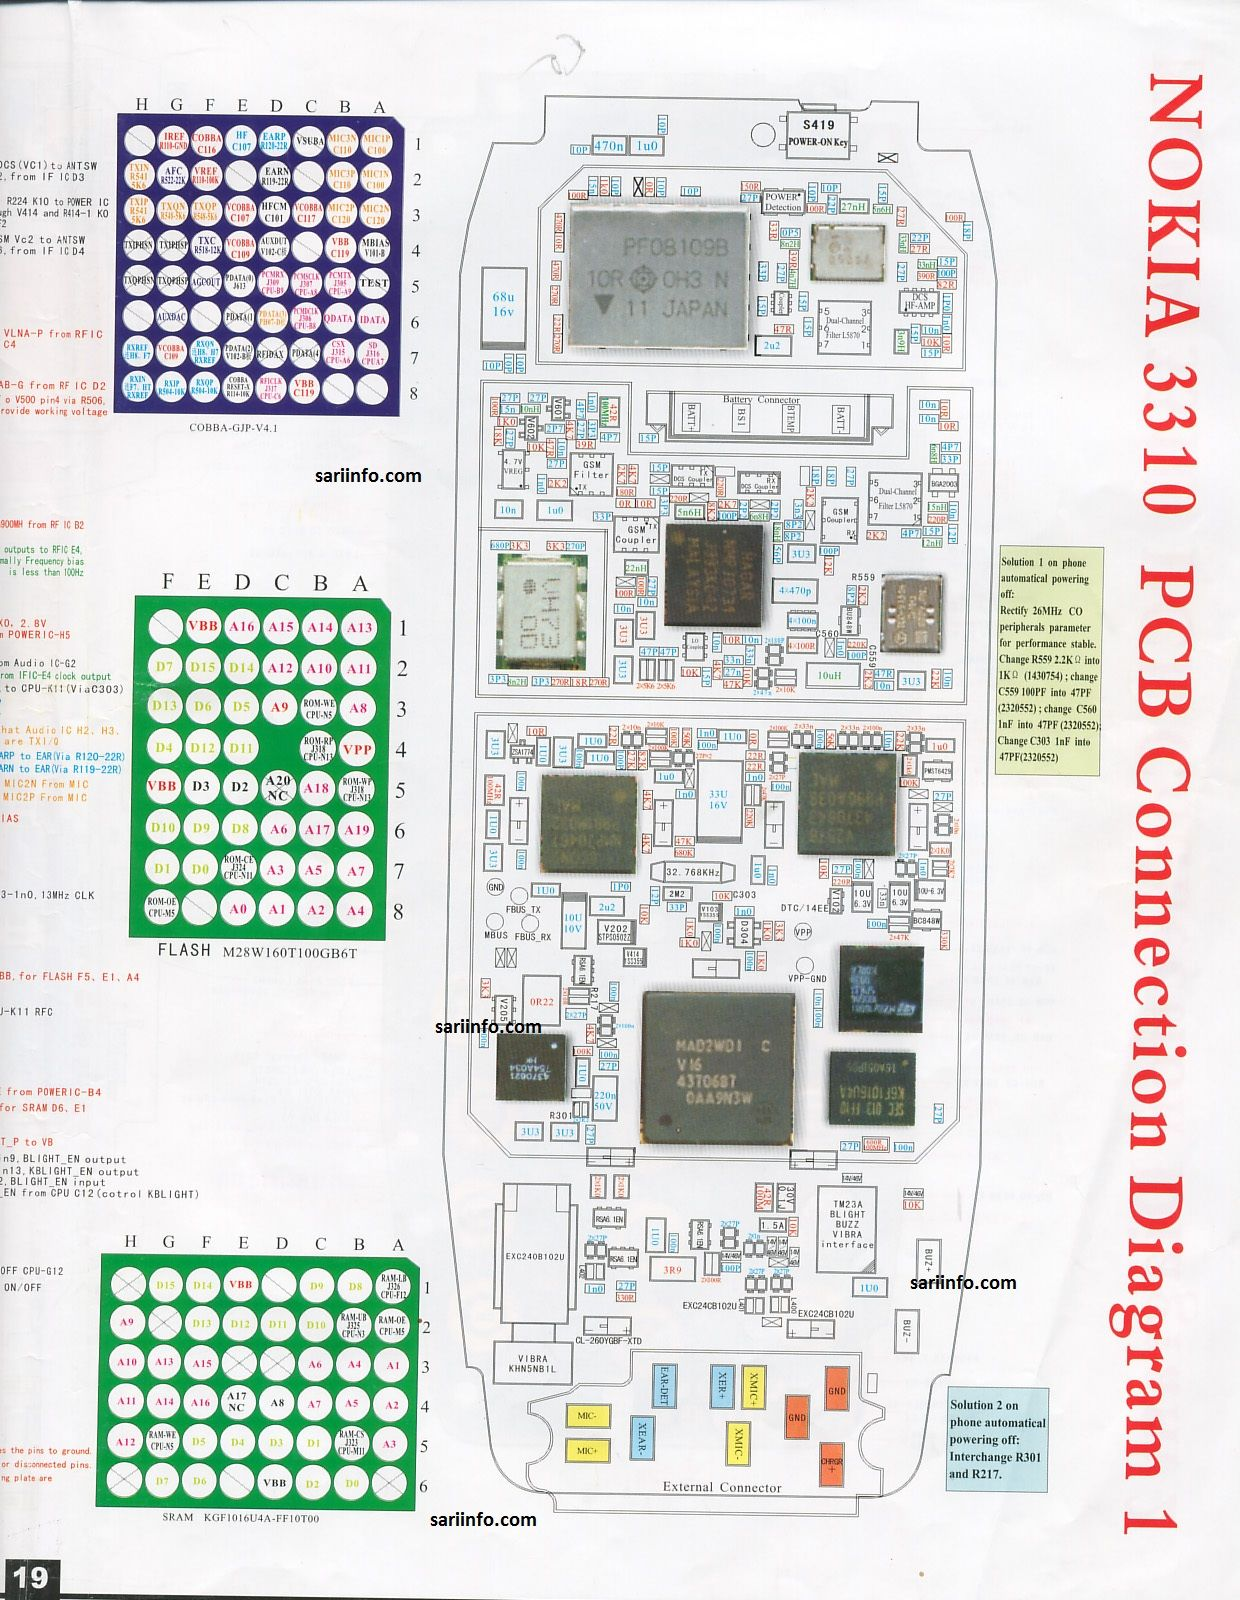 nokia 3310 pcb diagram solutions | Mobiles & Tablets